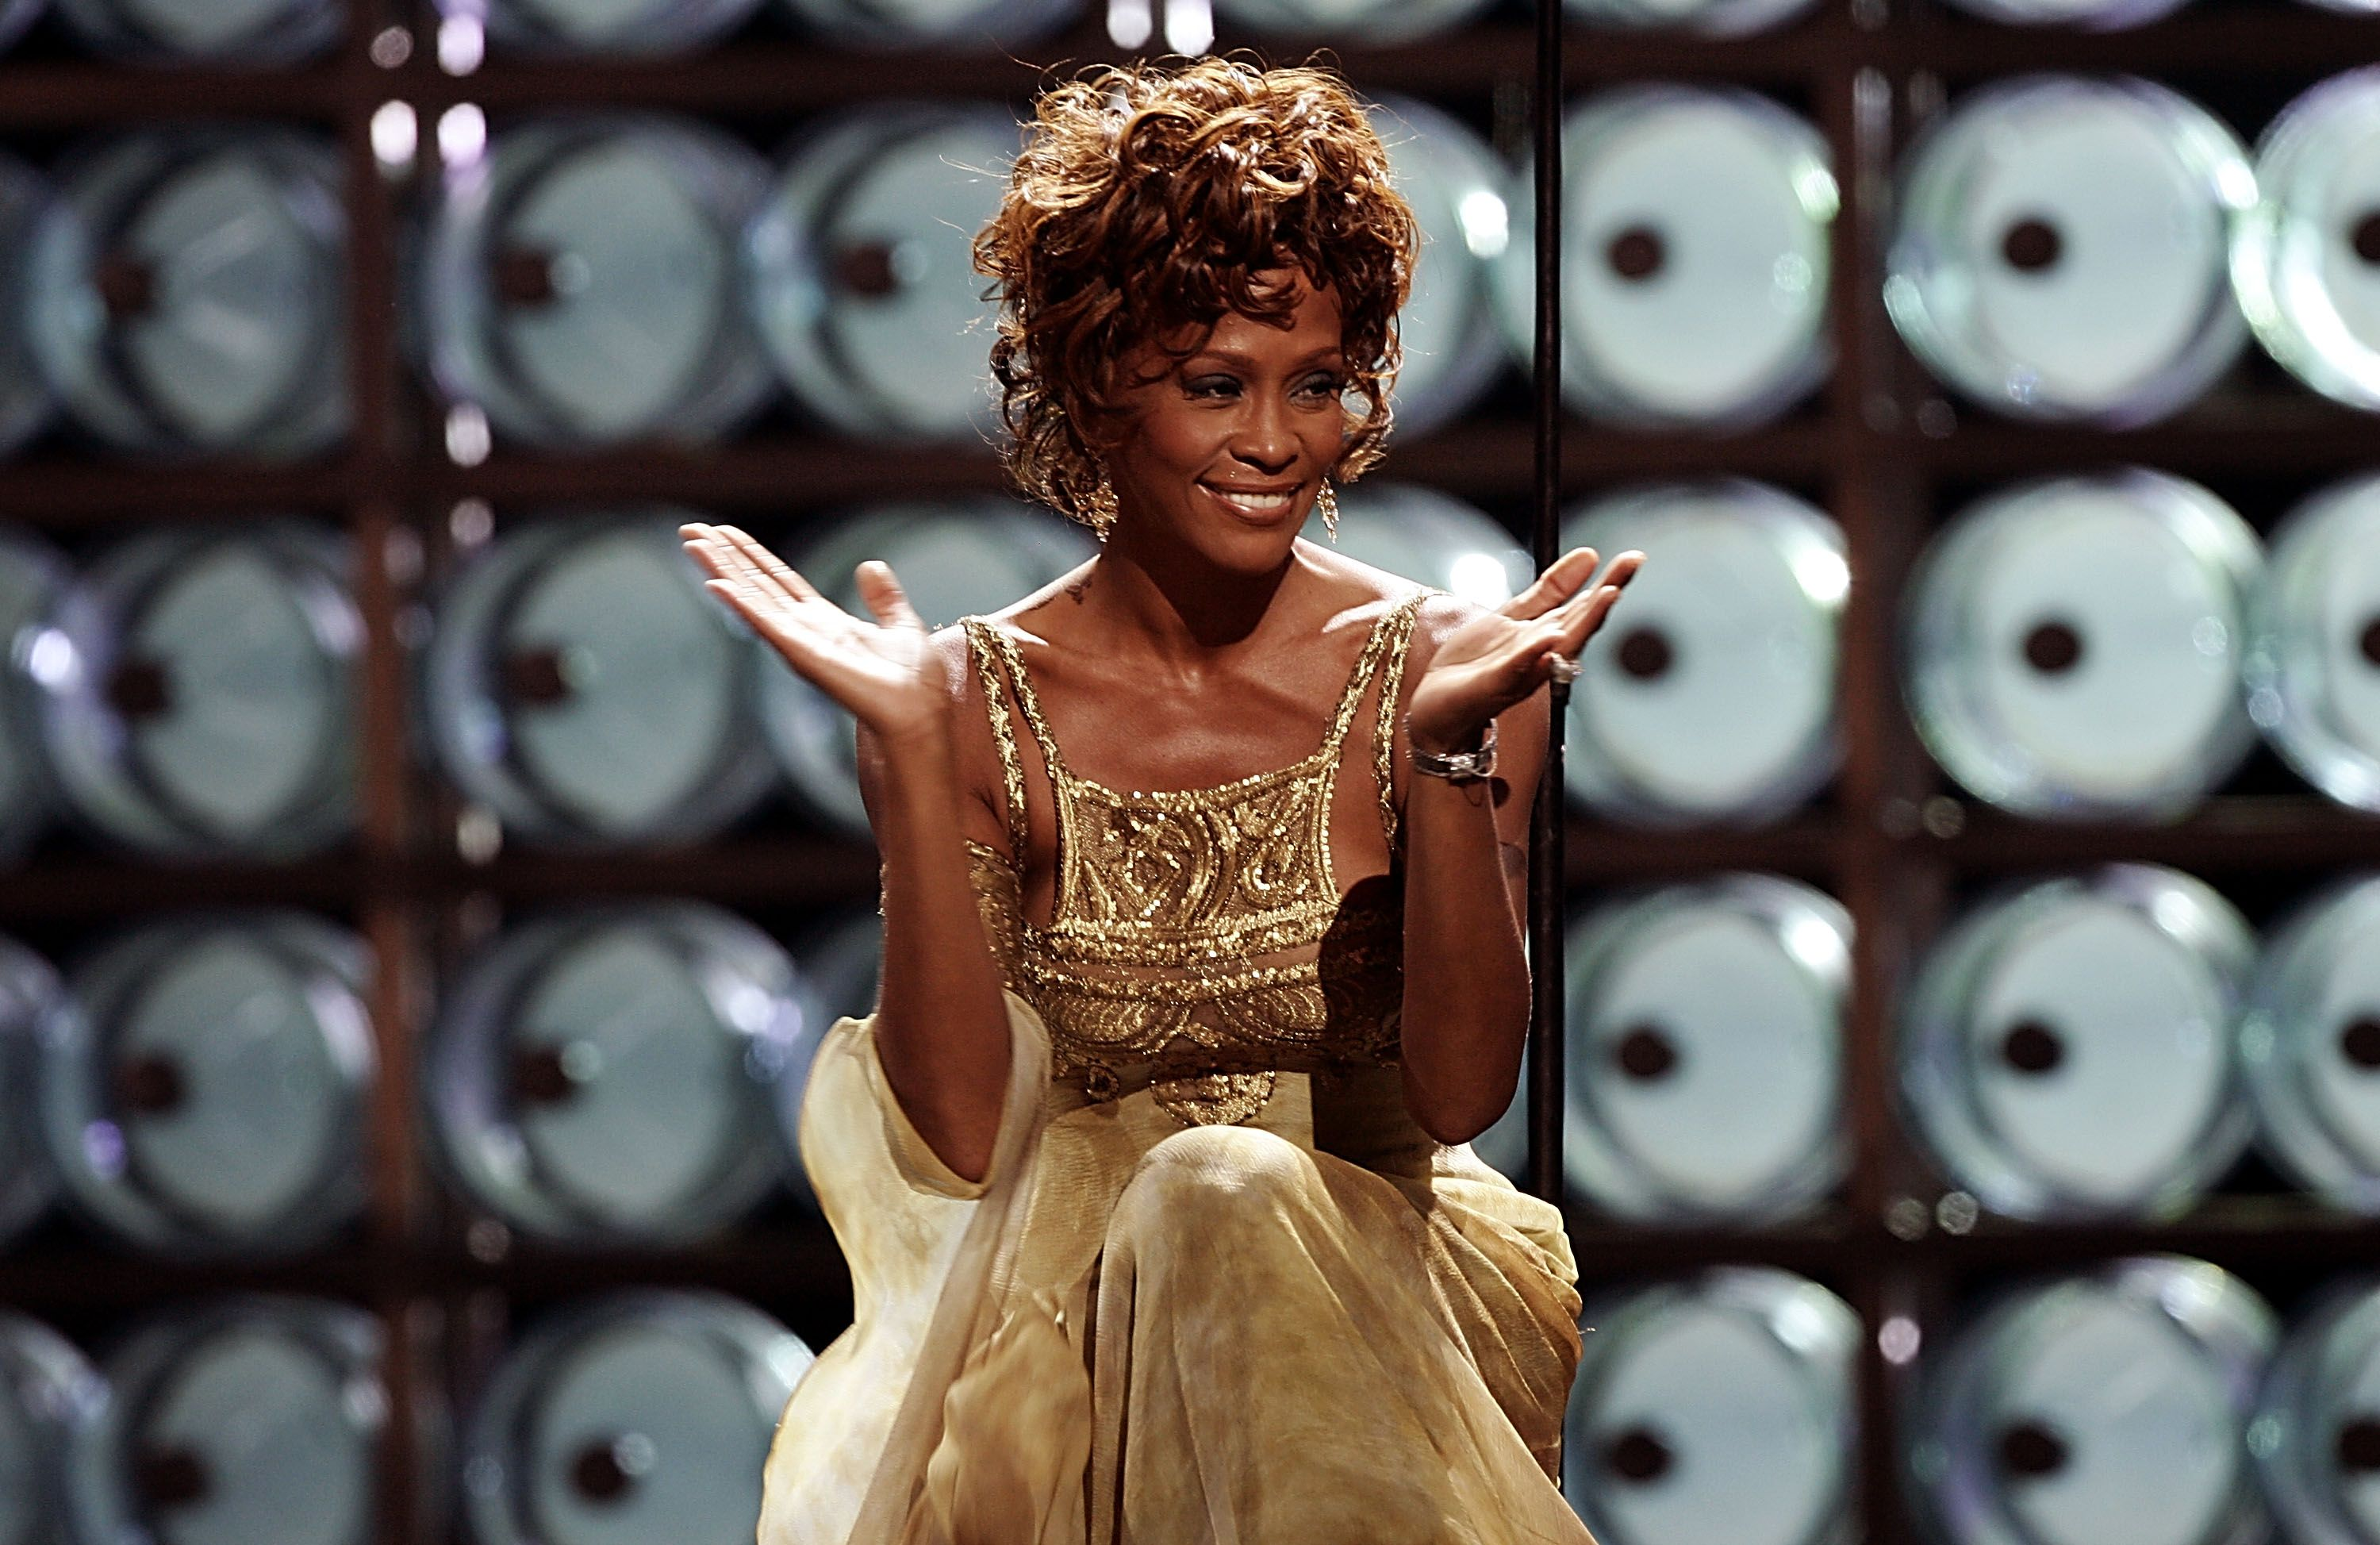 Whitney Houston is seen performing on stage during the 2004 World Music Awards. | Source: Getty Images